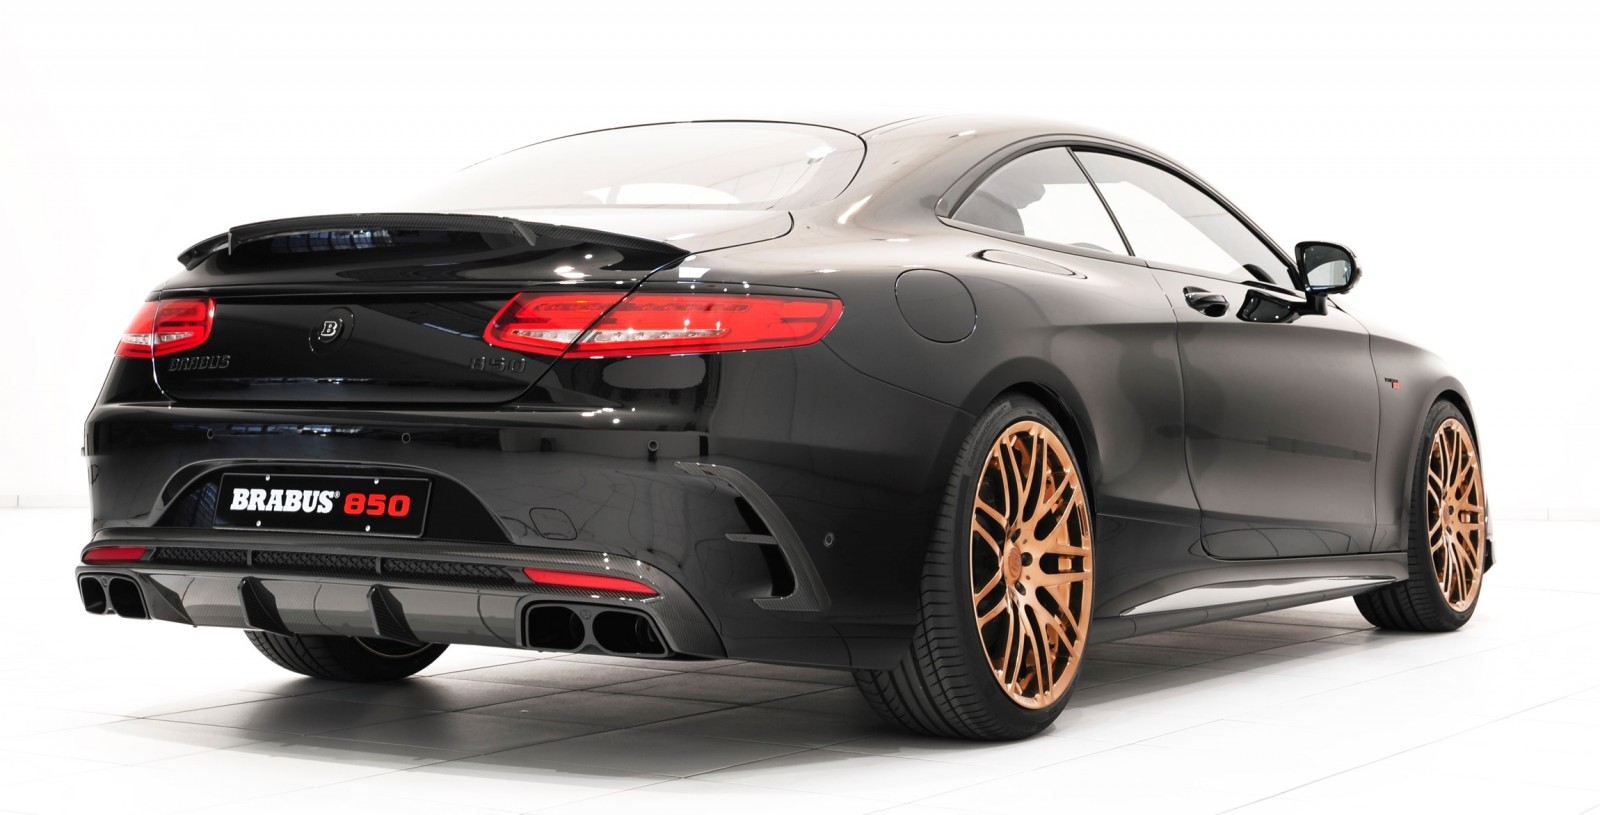 2015 brabus 850 s class coupe. Black Bedroom Furniture Sets. Home Design Ideas